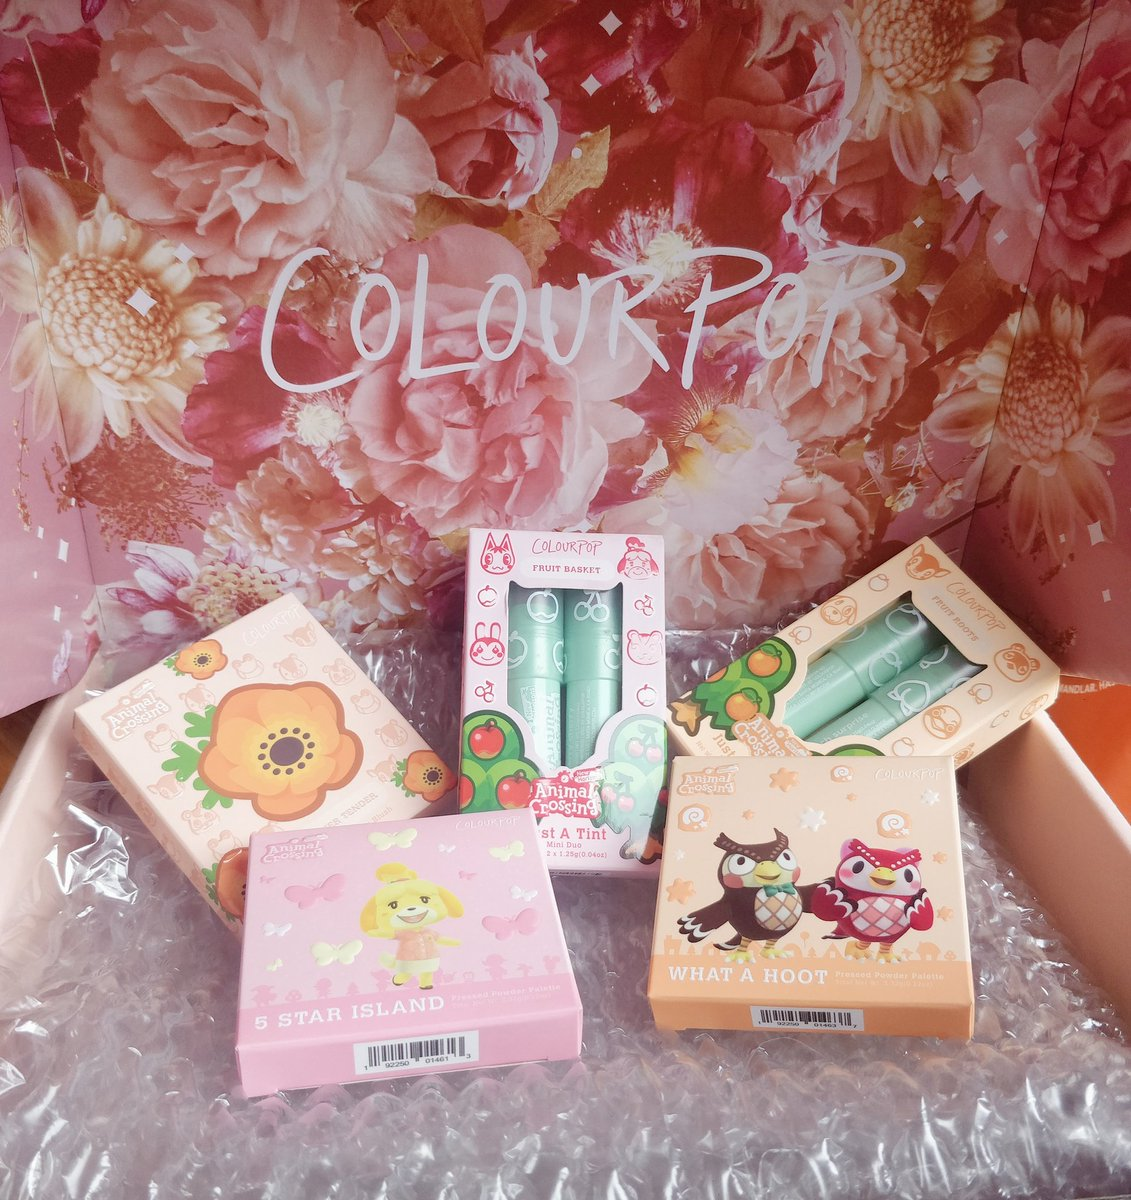 My #AnimalCrossingxColourpop finally came!!! I'm all aflutter (◕ᴗ◕✿)  Everything looks so amazing and just perfect 🌺 five stars!